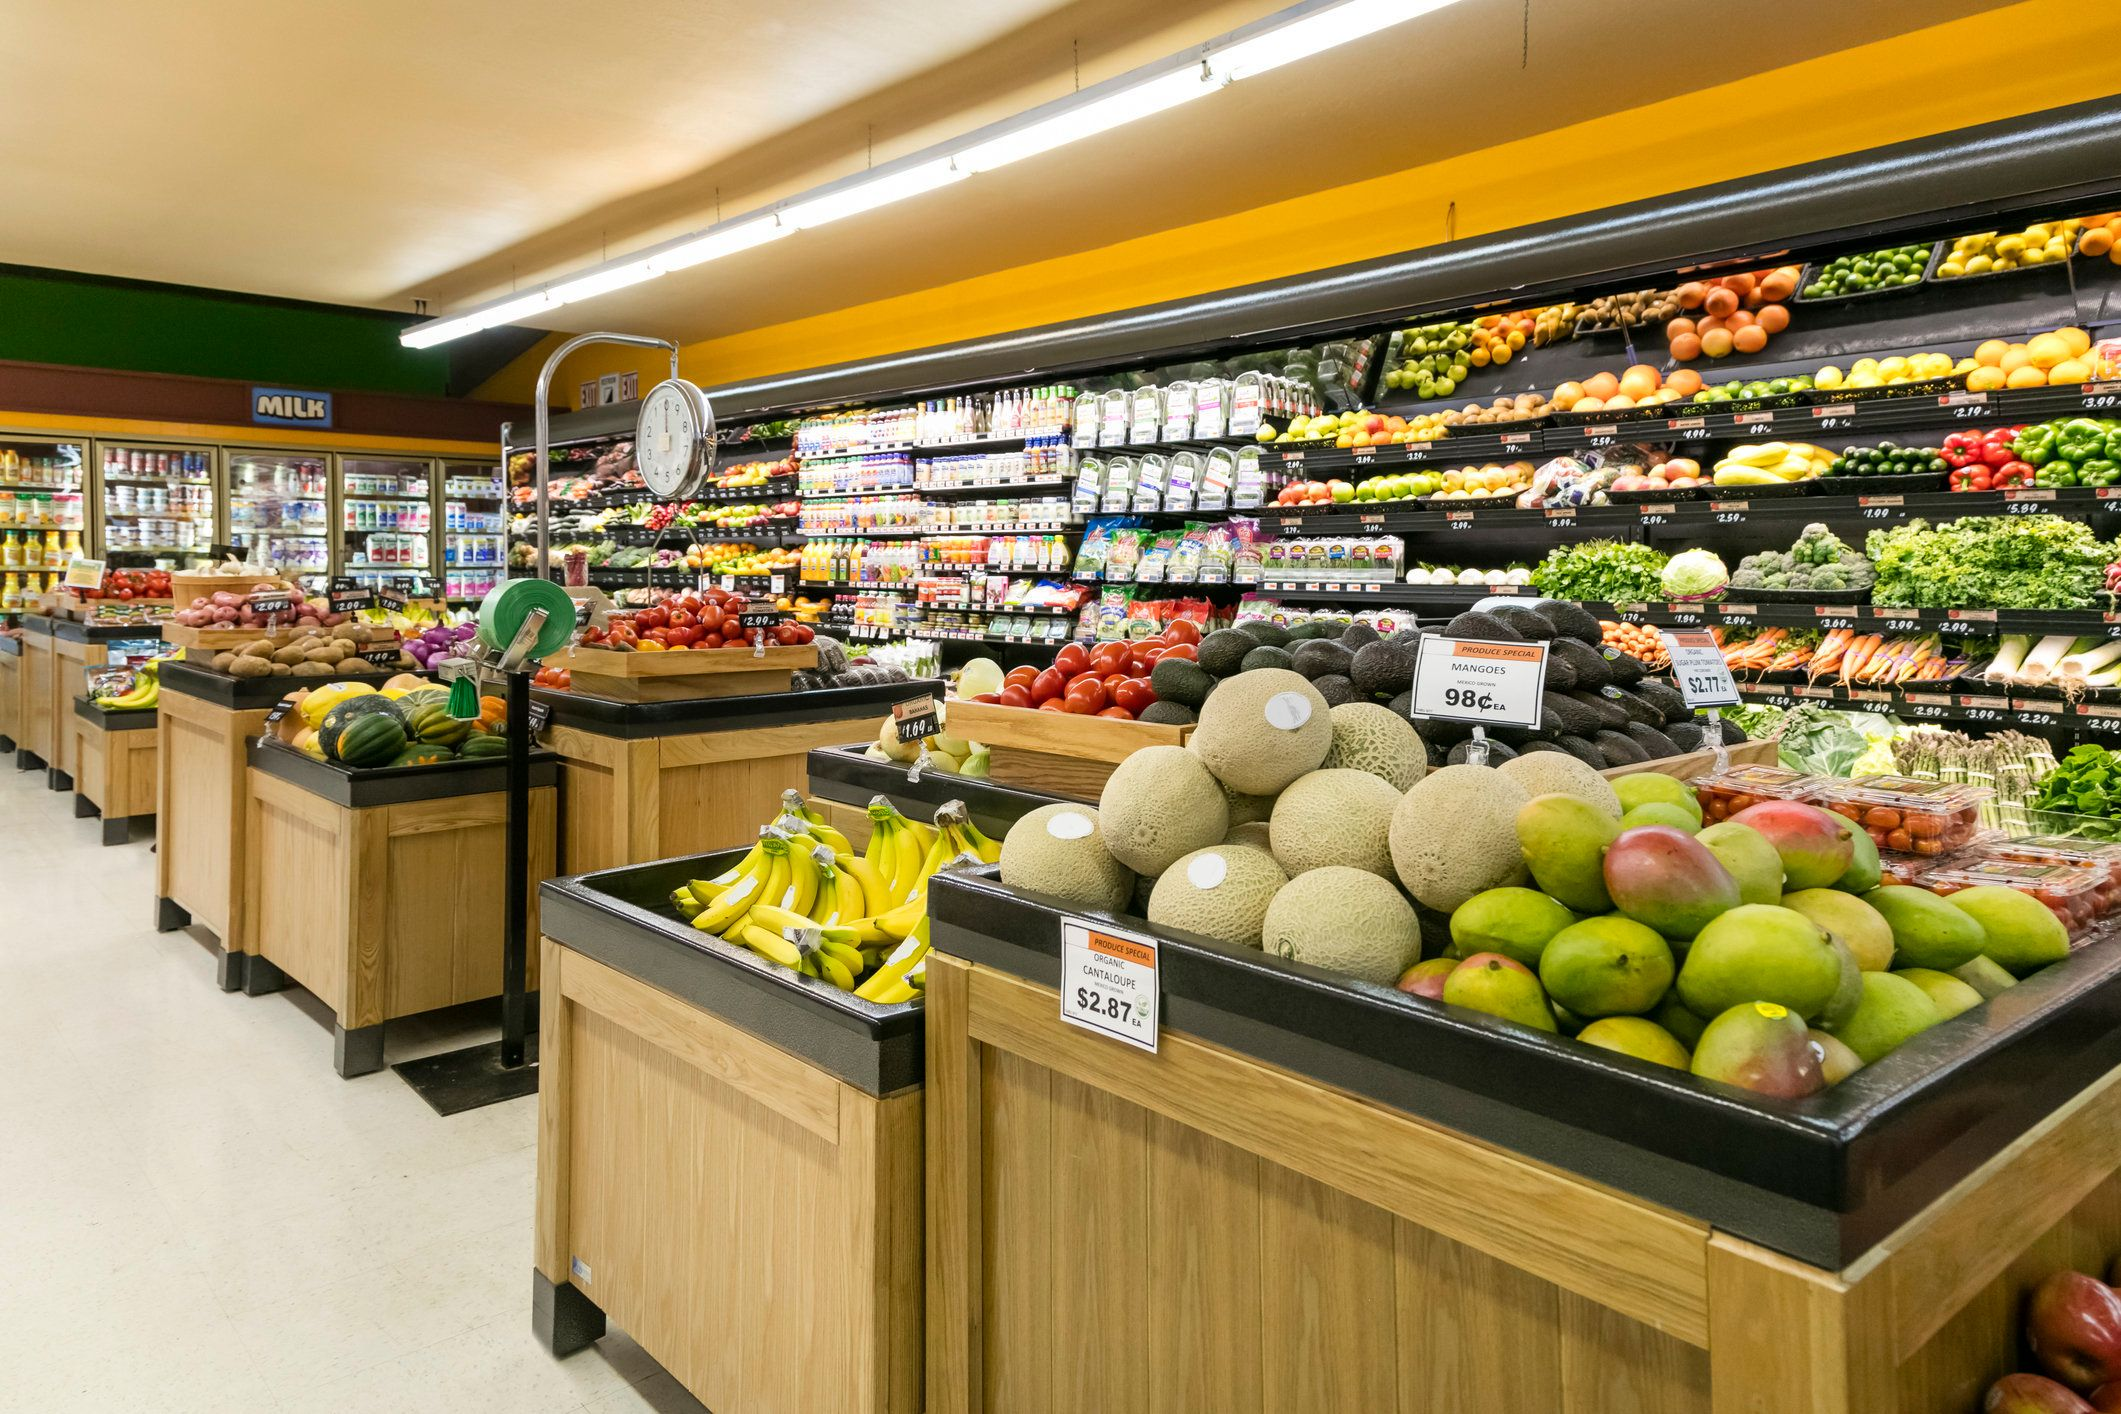 Order fresh groceries online Shop at Publix Delivers from any device. Schedule the delivery Get your groceries in as little as an hour, or when you want them. Get it delivered to your doorstep Fresh handpicked groceries from Publix Delivers to your front door! How It Works Log In.